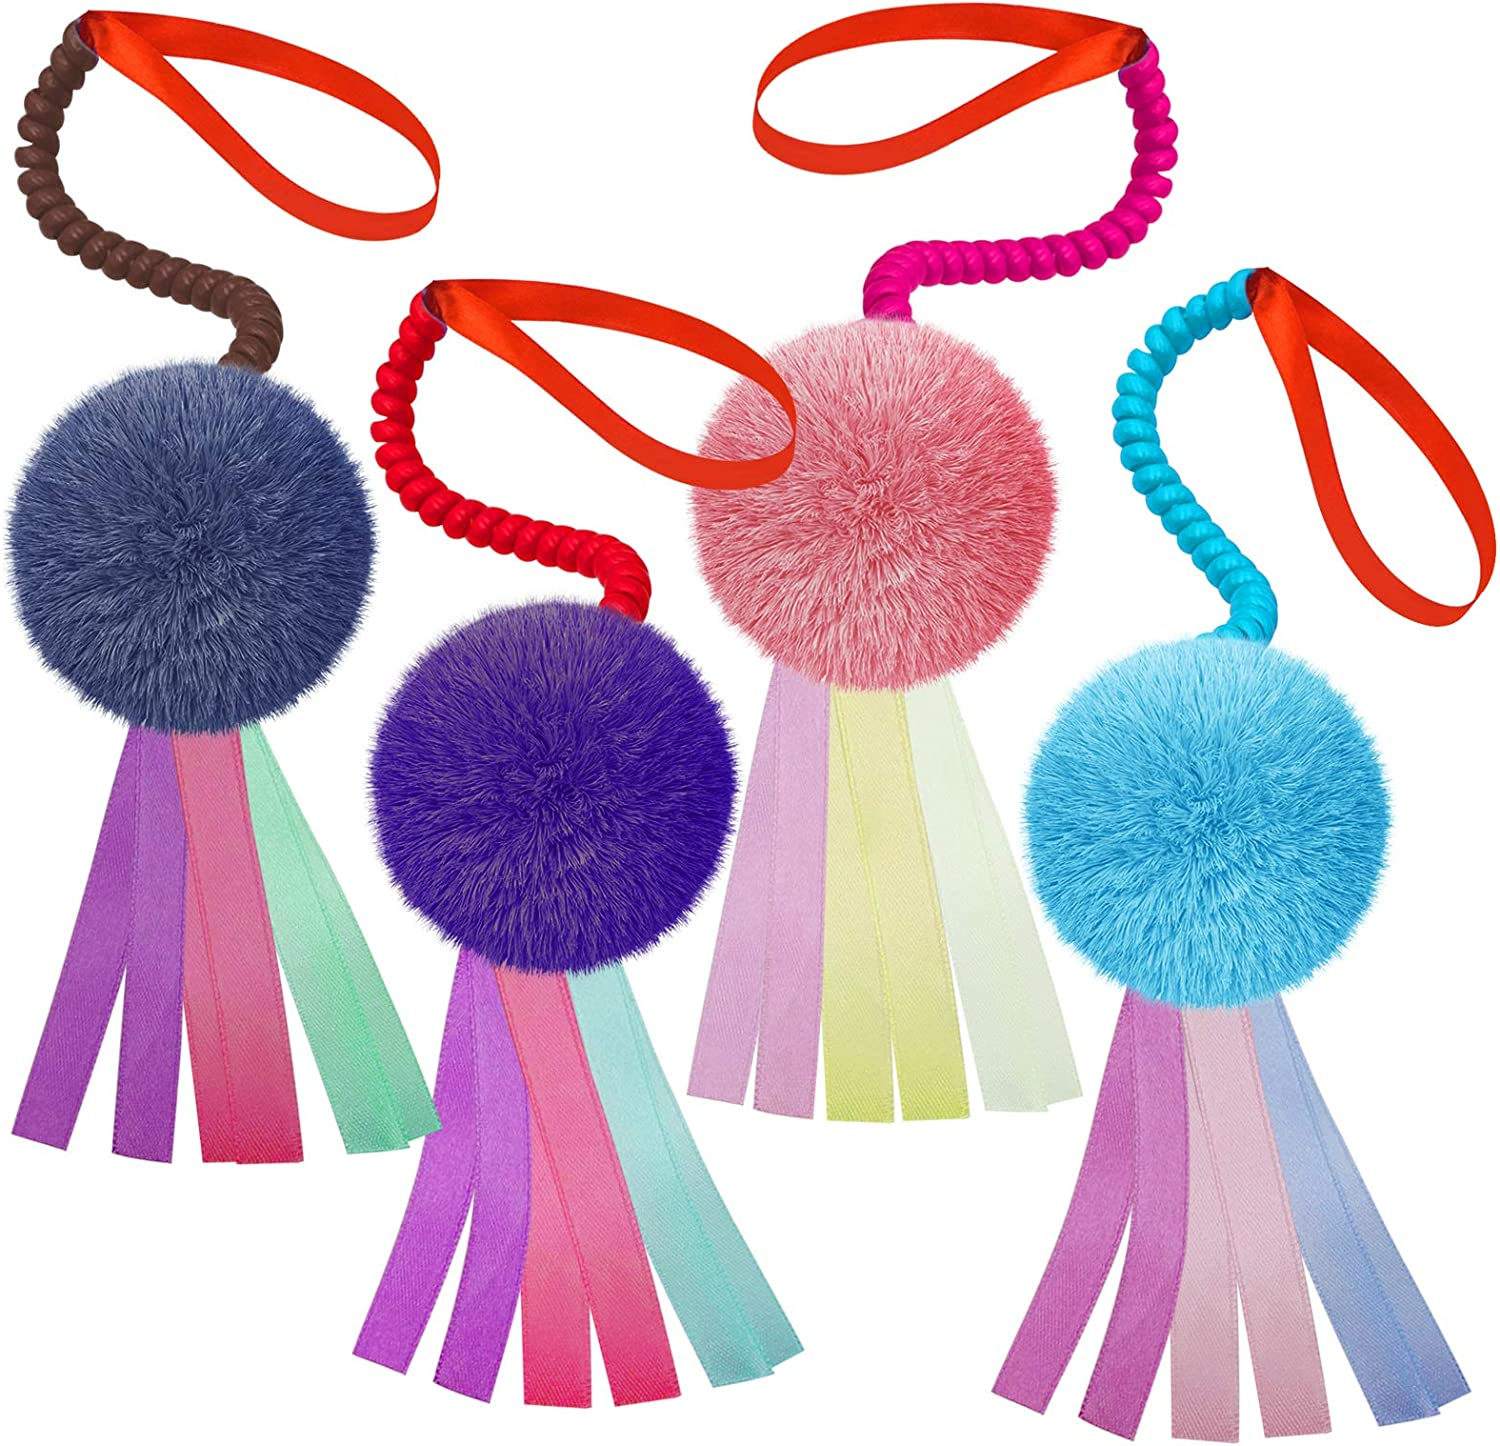 Lepawit 4Pcs Cat Interactive Toys Colorful Furry Balls Sounable with Ribbon and Elastic Coil Spiral Springs Chasing Toys for Indoor Feline Kitten Door Hanging Cats Teaser Toys